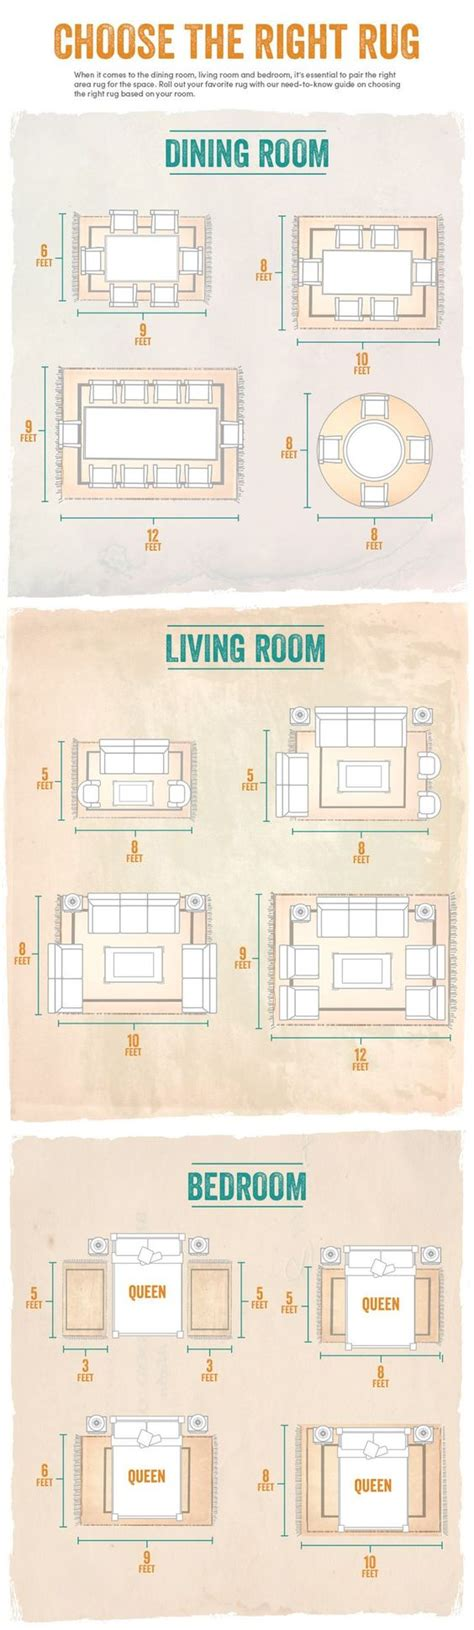 Rug Placement Rugs And Rug Size On Pinterest Rug Sizes